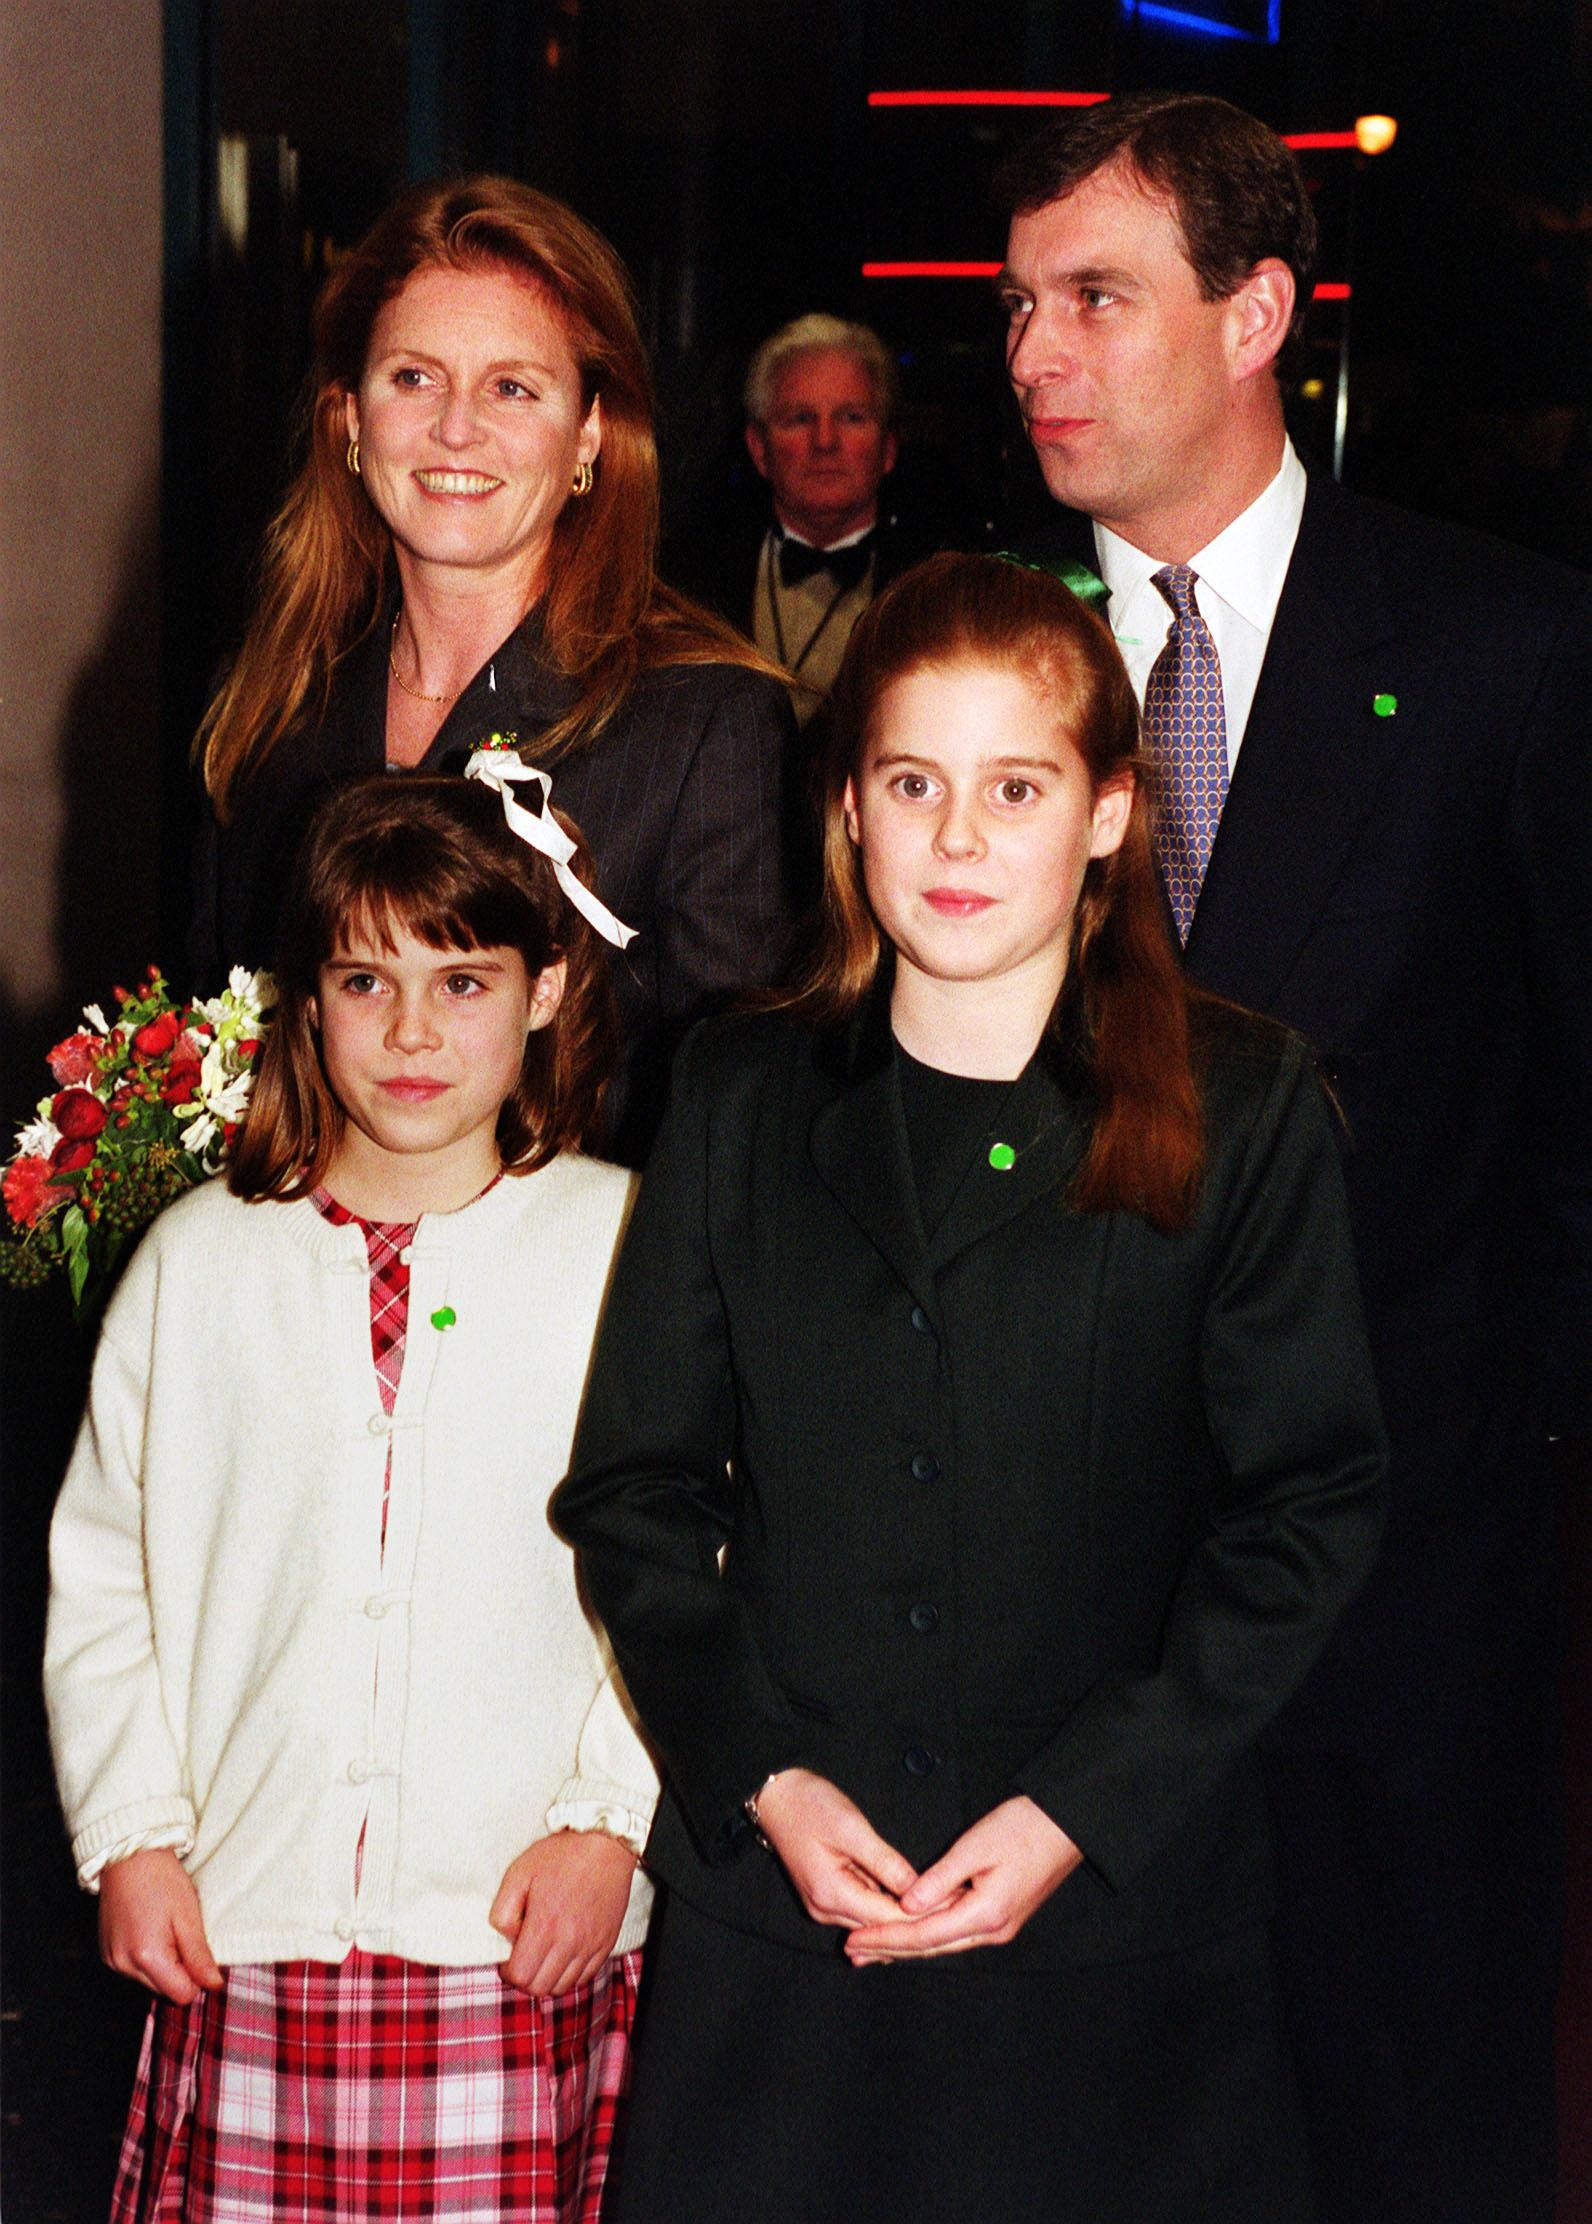 The Duke and Duchess of York arrive with their daughters, Princess Beatrice and Princess Eugenie (left), at the Warner Village, Leicester Square, for the Royal charity premiere of The Iron Giant.  * An animated film, based on the short story by the late Poet Laureate Ted Hughes, which tells the story of a massive robot who falls to earth and is befriended by a lonely nine-year-old boy.